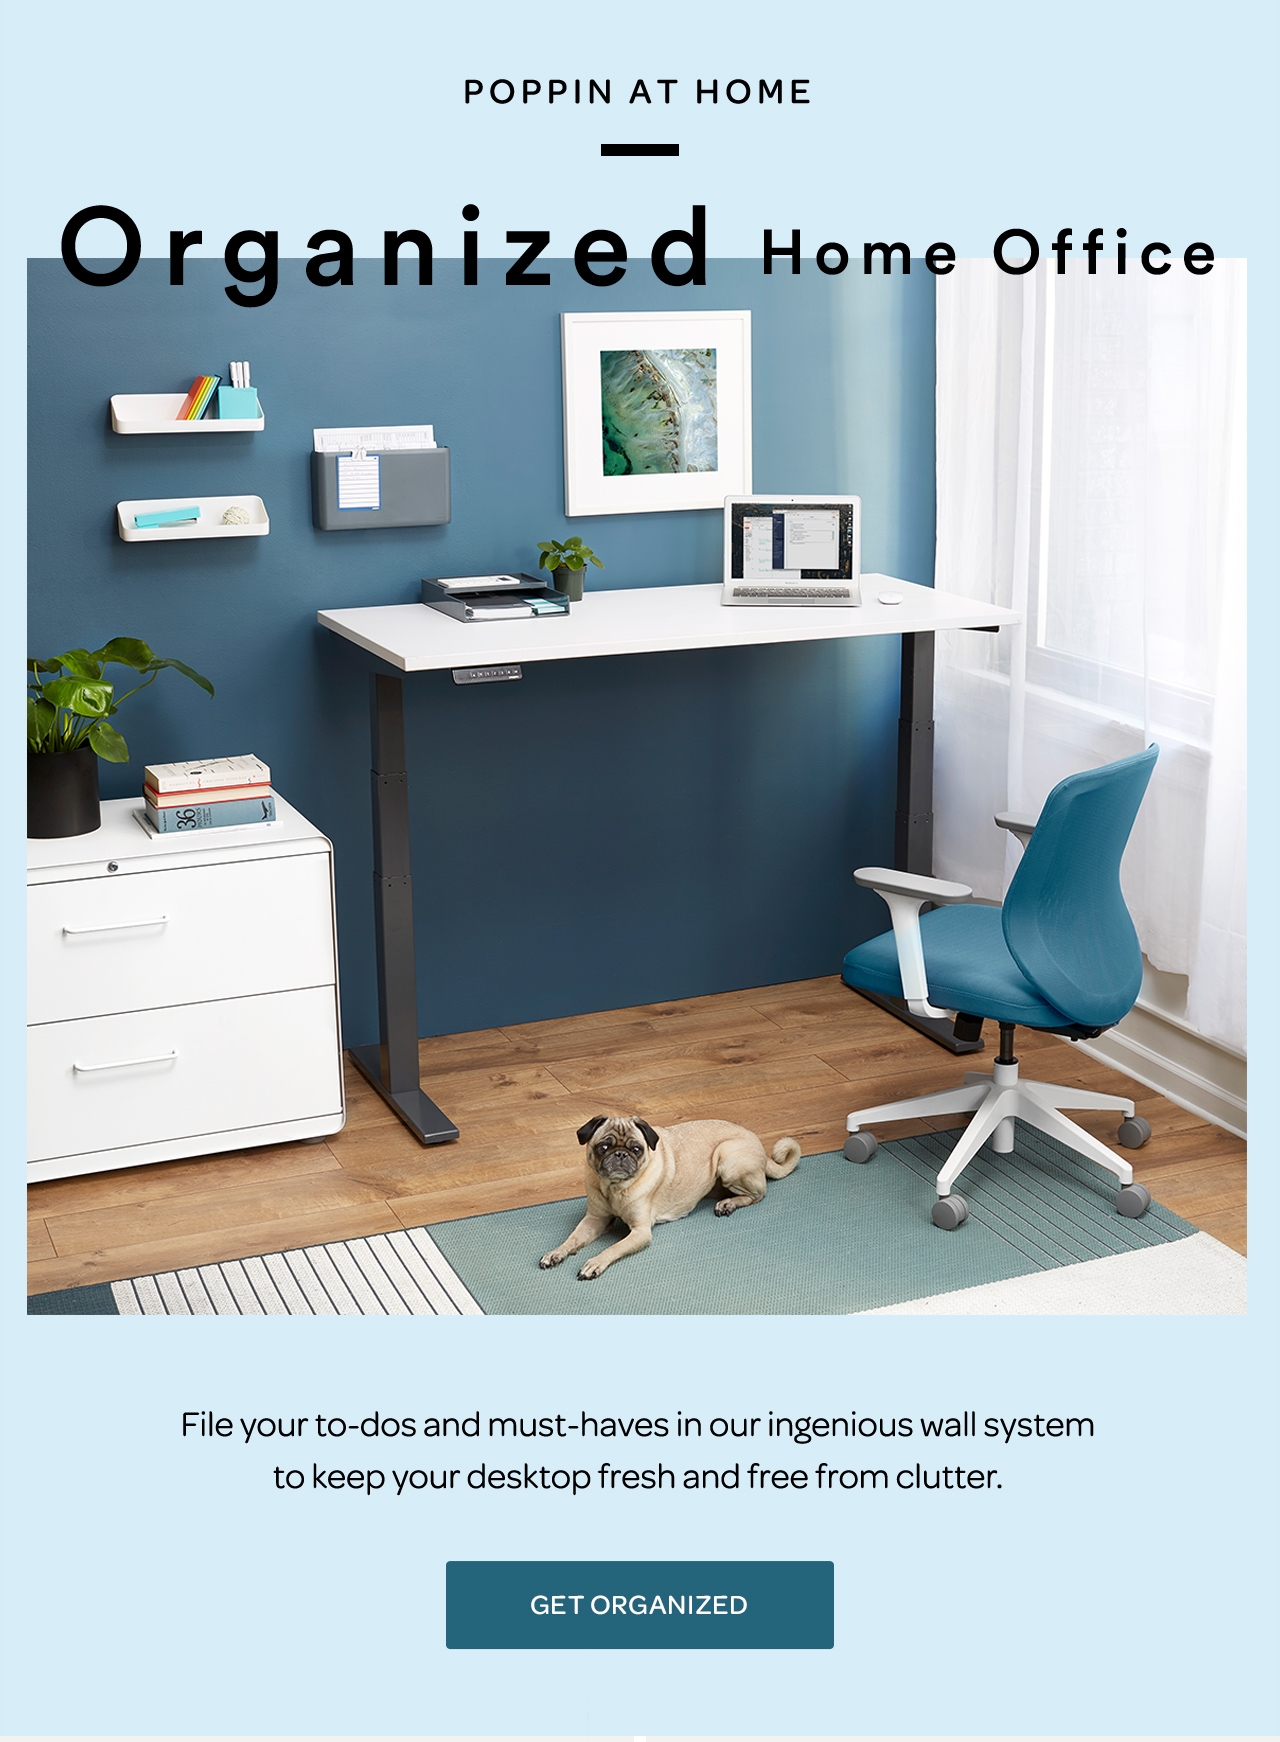 The Organized Home Office